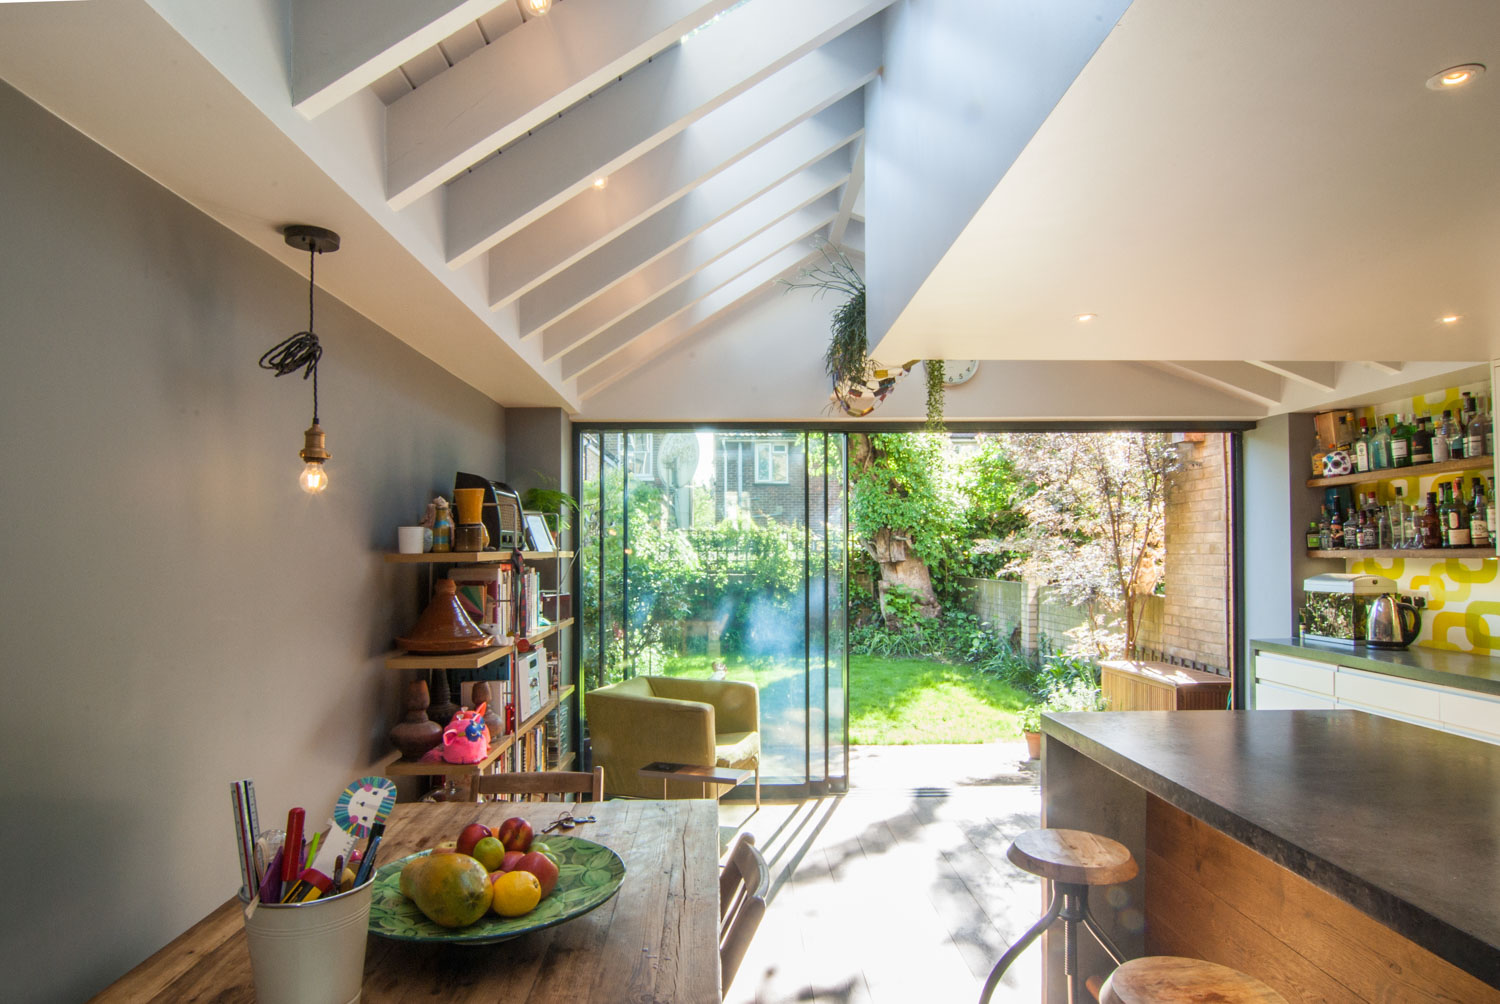 Exposed timber joists with roof light above make this kitchen dining area an enjoyable space.